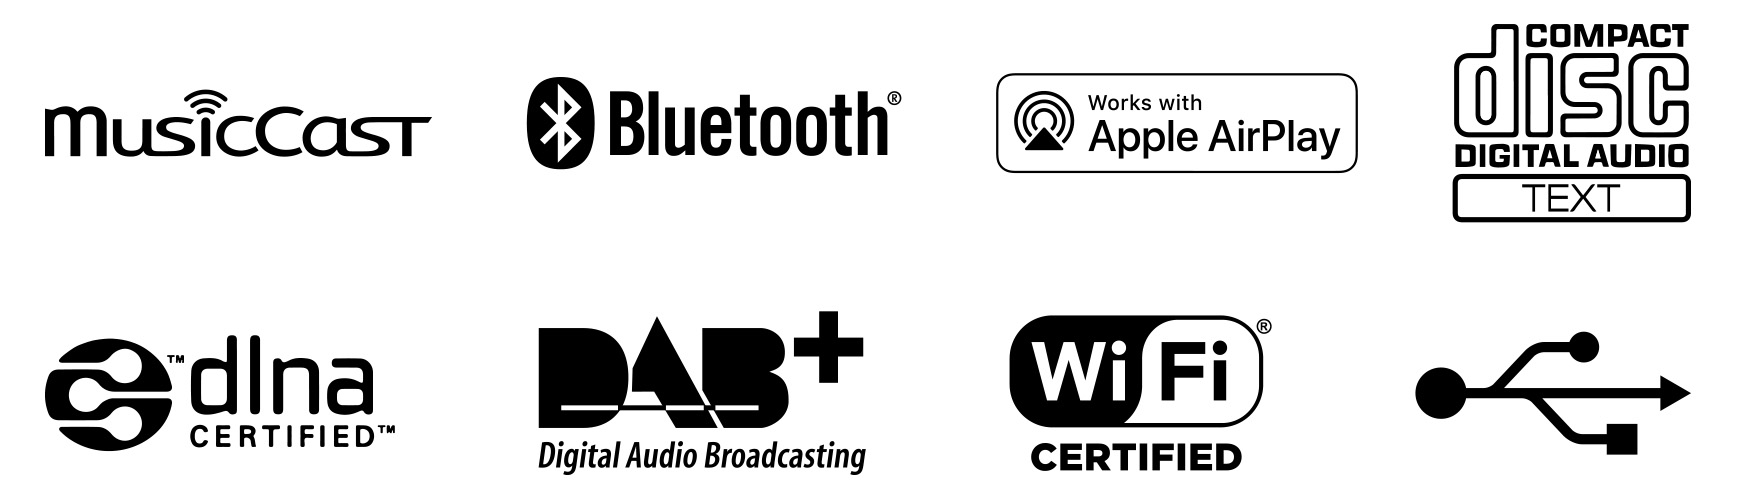 Supports MusicCast, Bluetooth, Airplay, CD, DLNA, DAB+, WiFi and USB Media